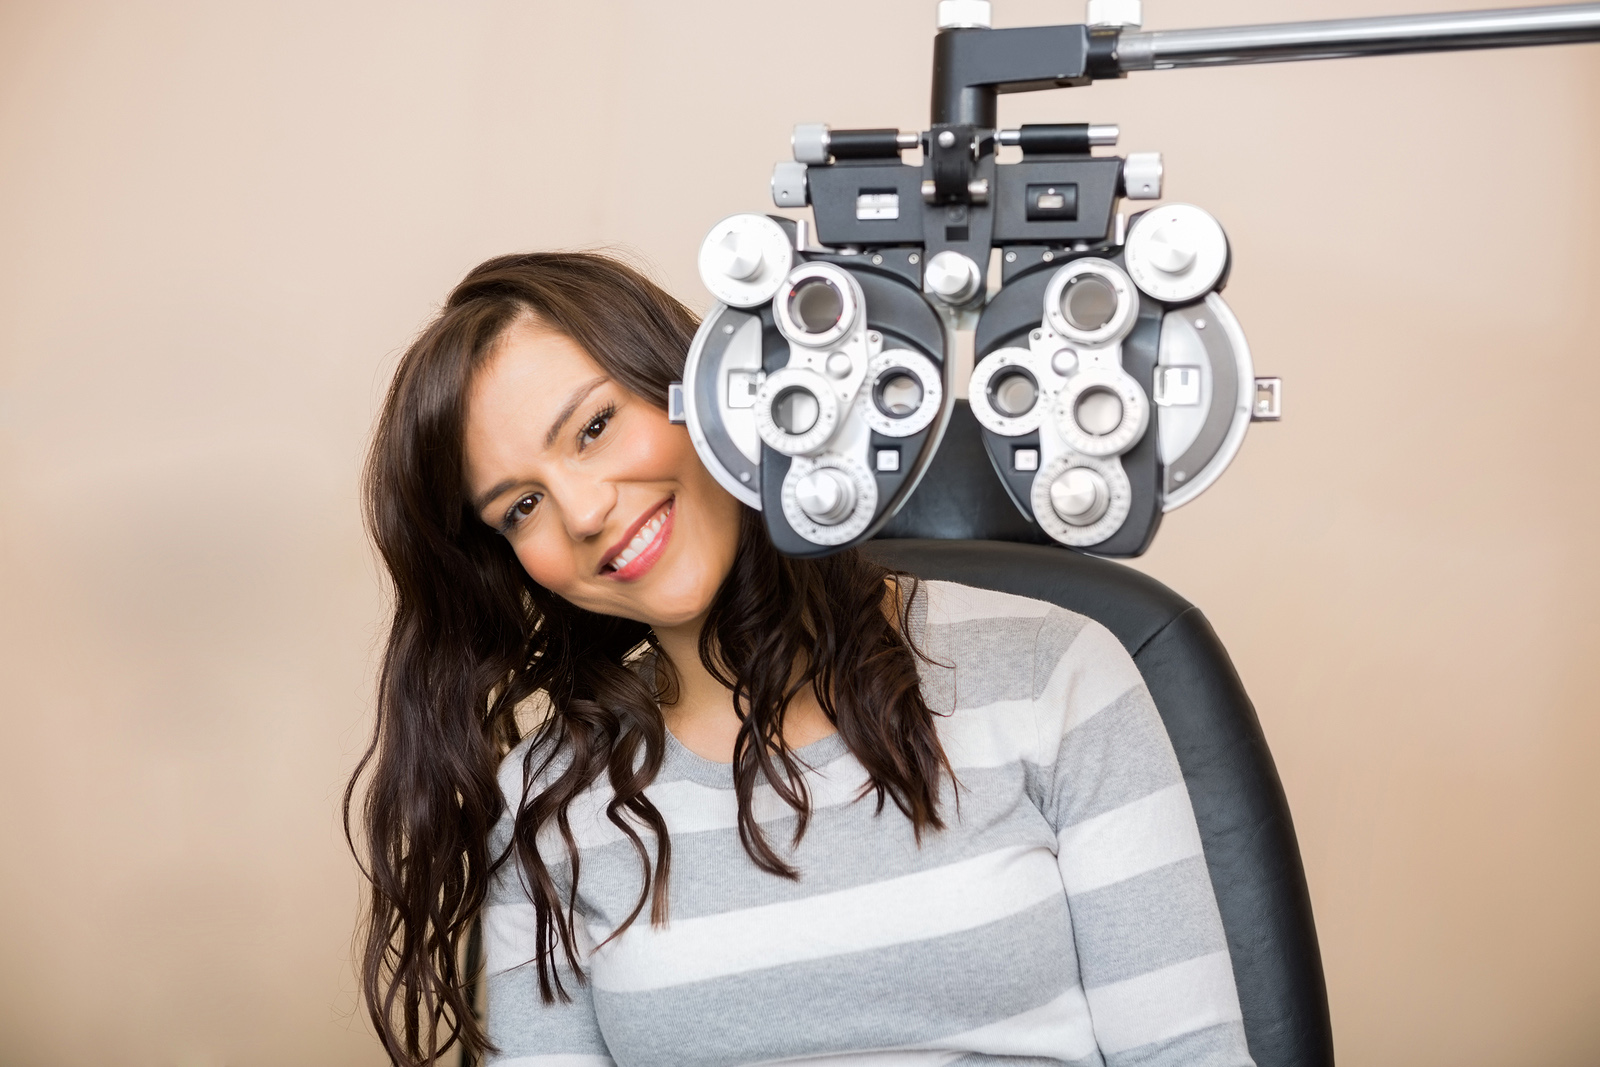 Have you had an annual eye exam? Our optometrist in Plano stresses the importance of regular eye exams for your overall health.  Call us now to learn more!